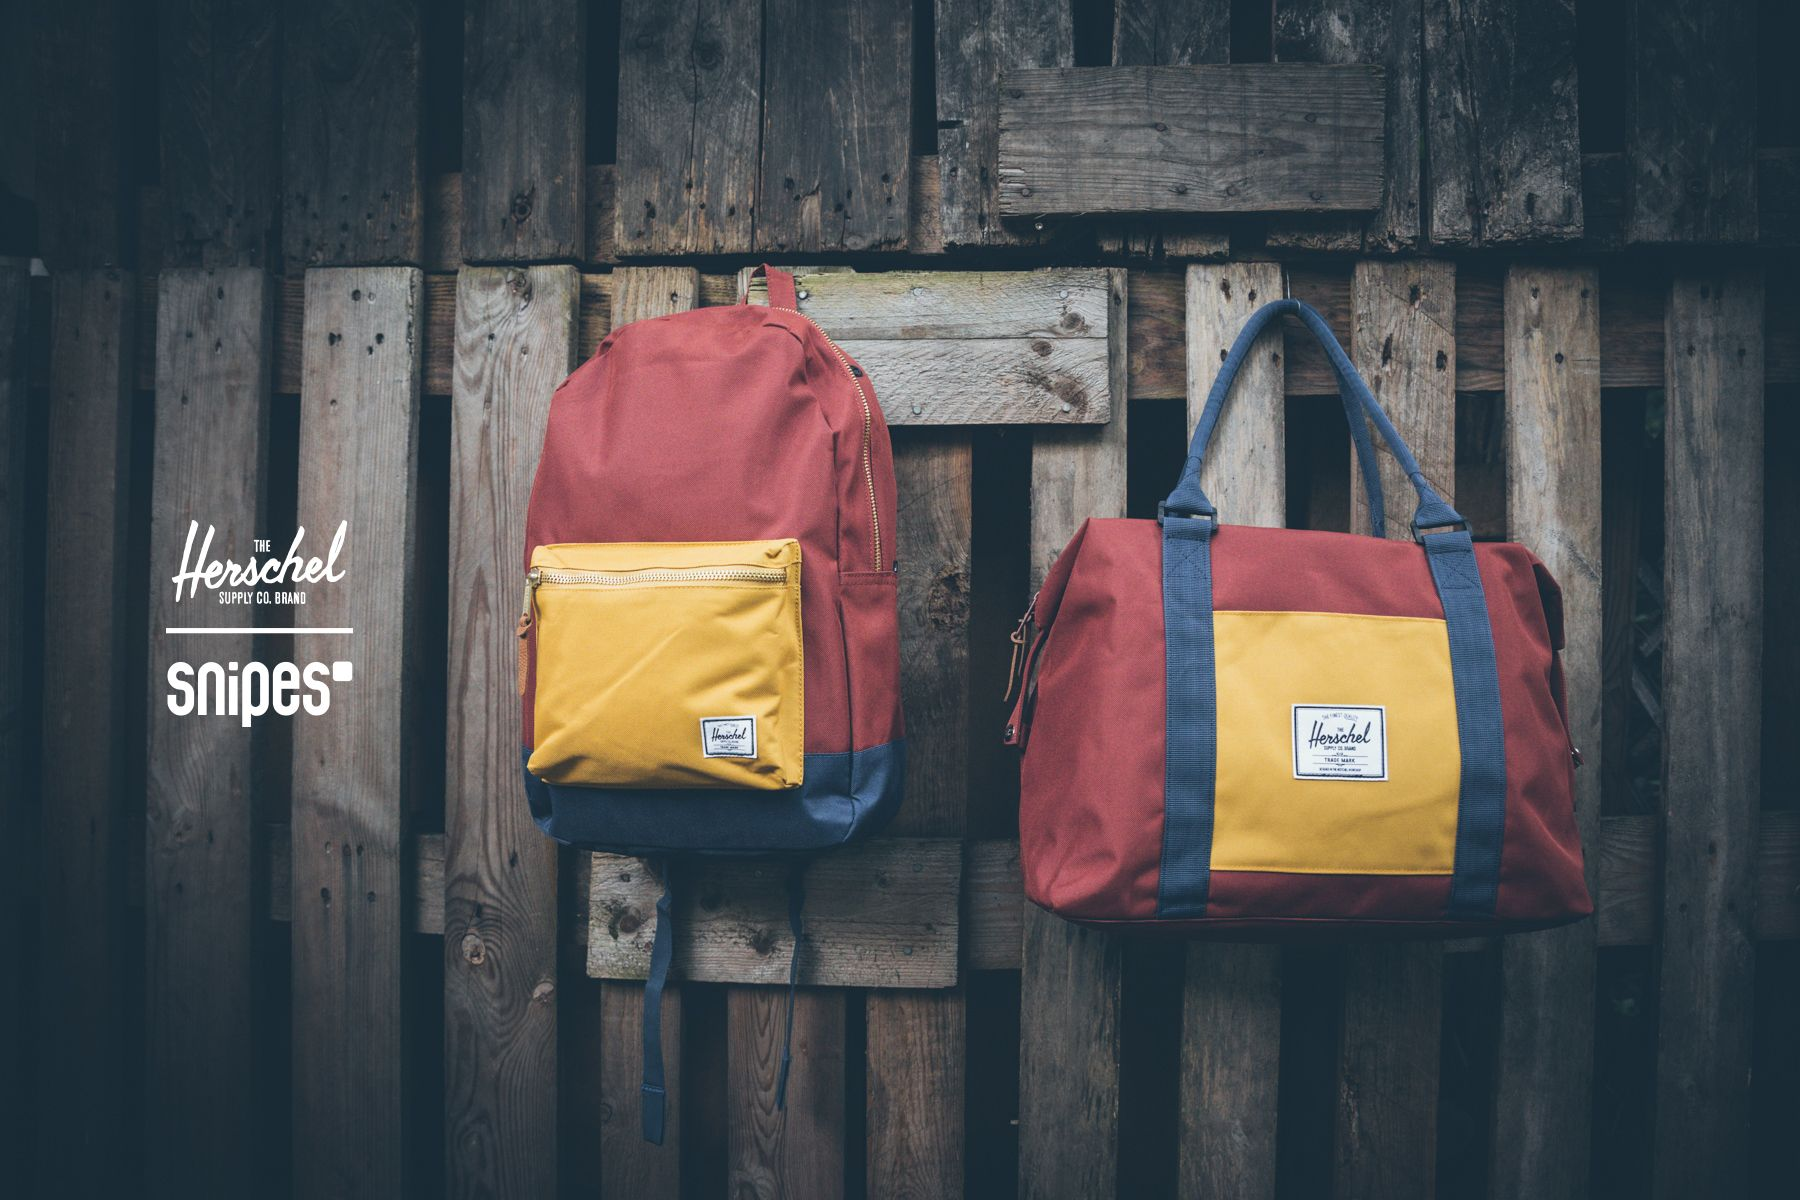 New Stuff from Herschel!